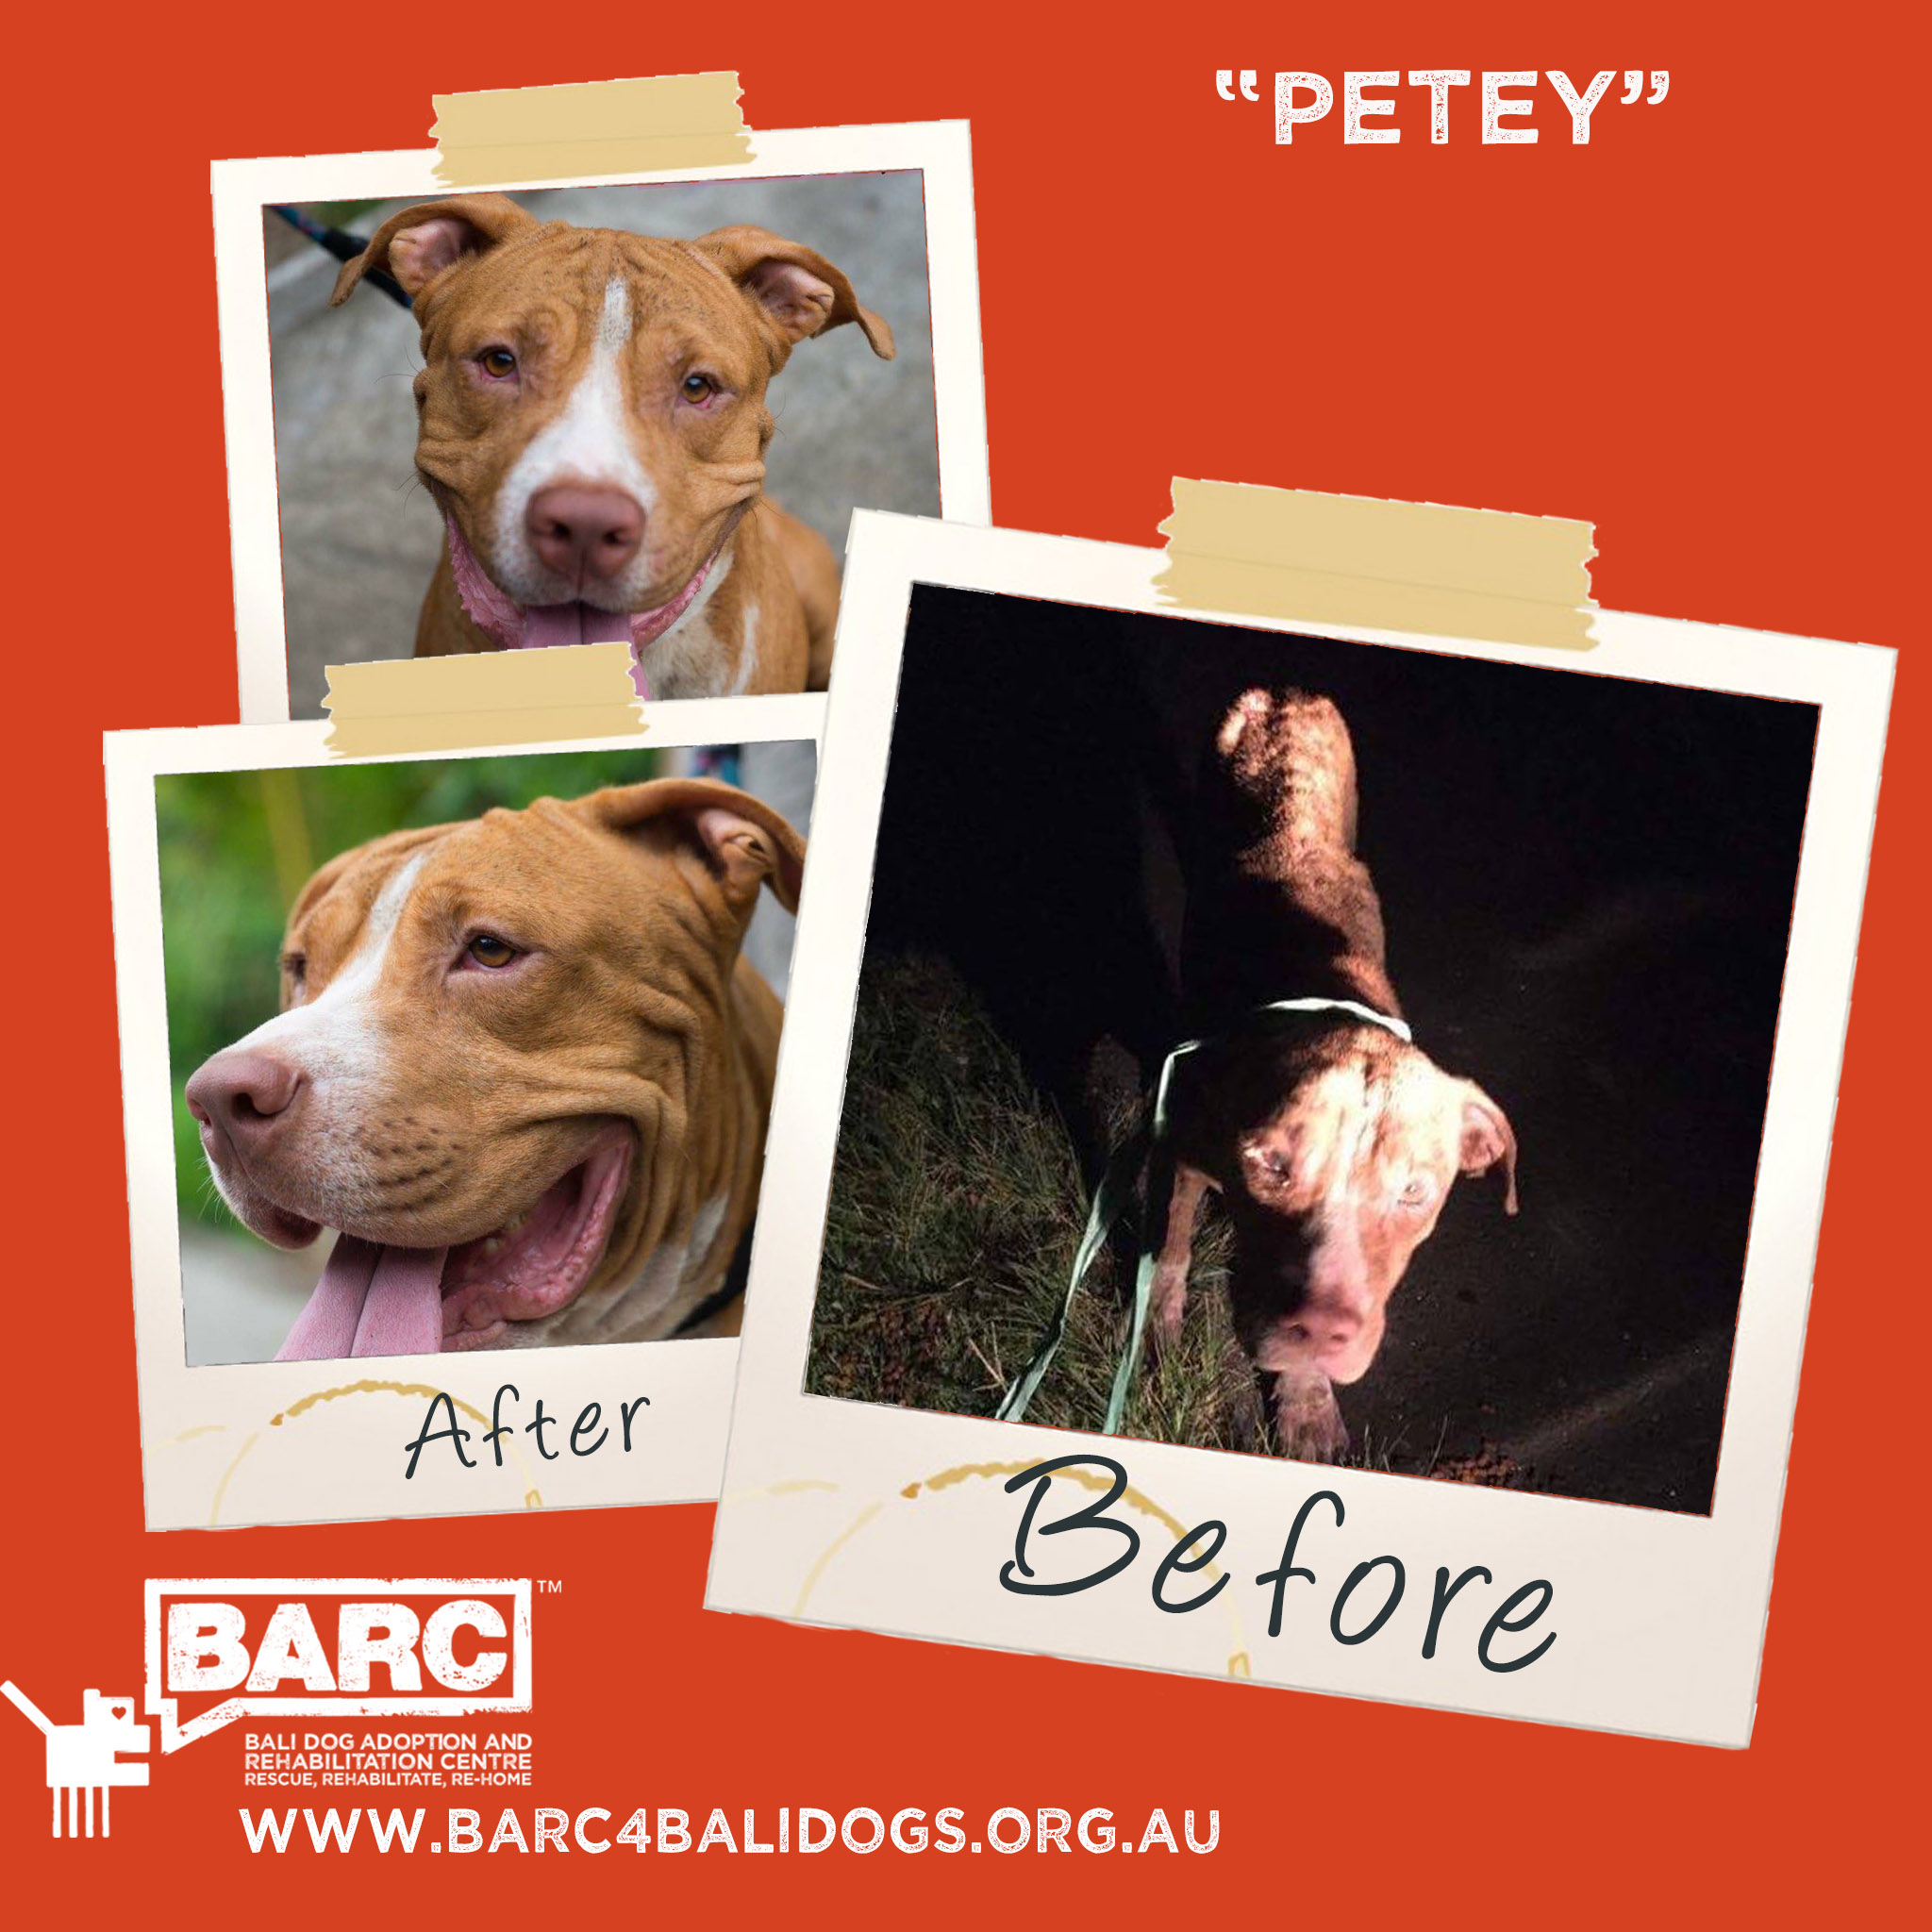 Before & After Petey